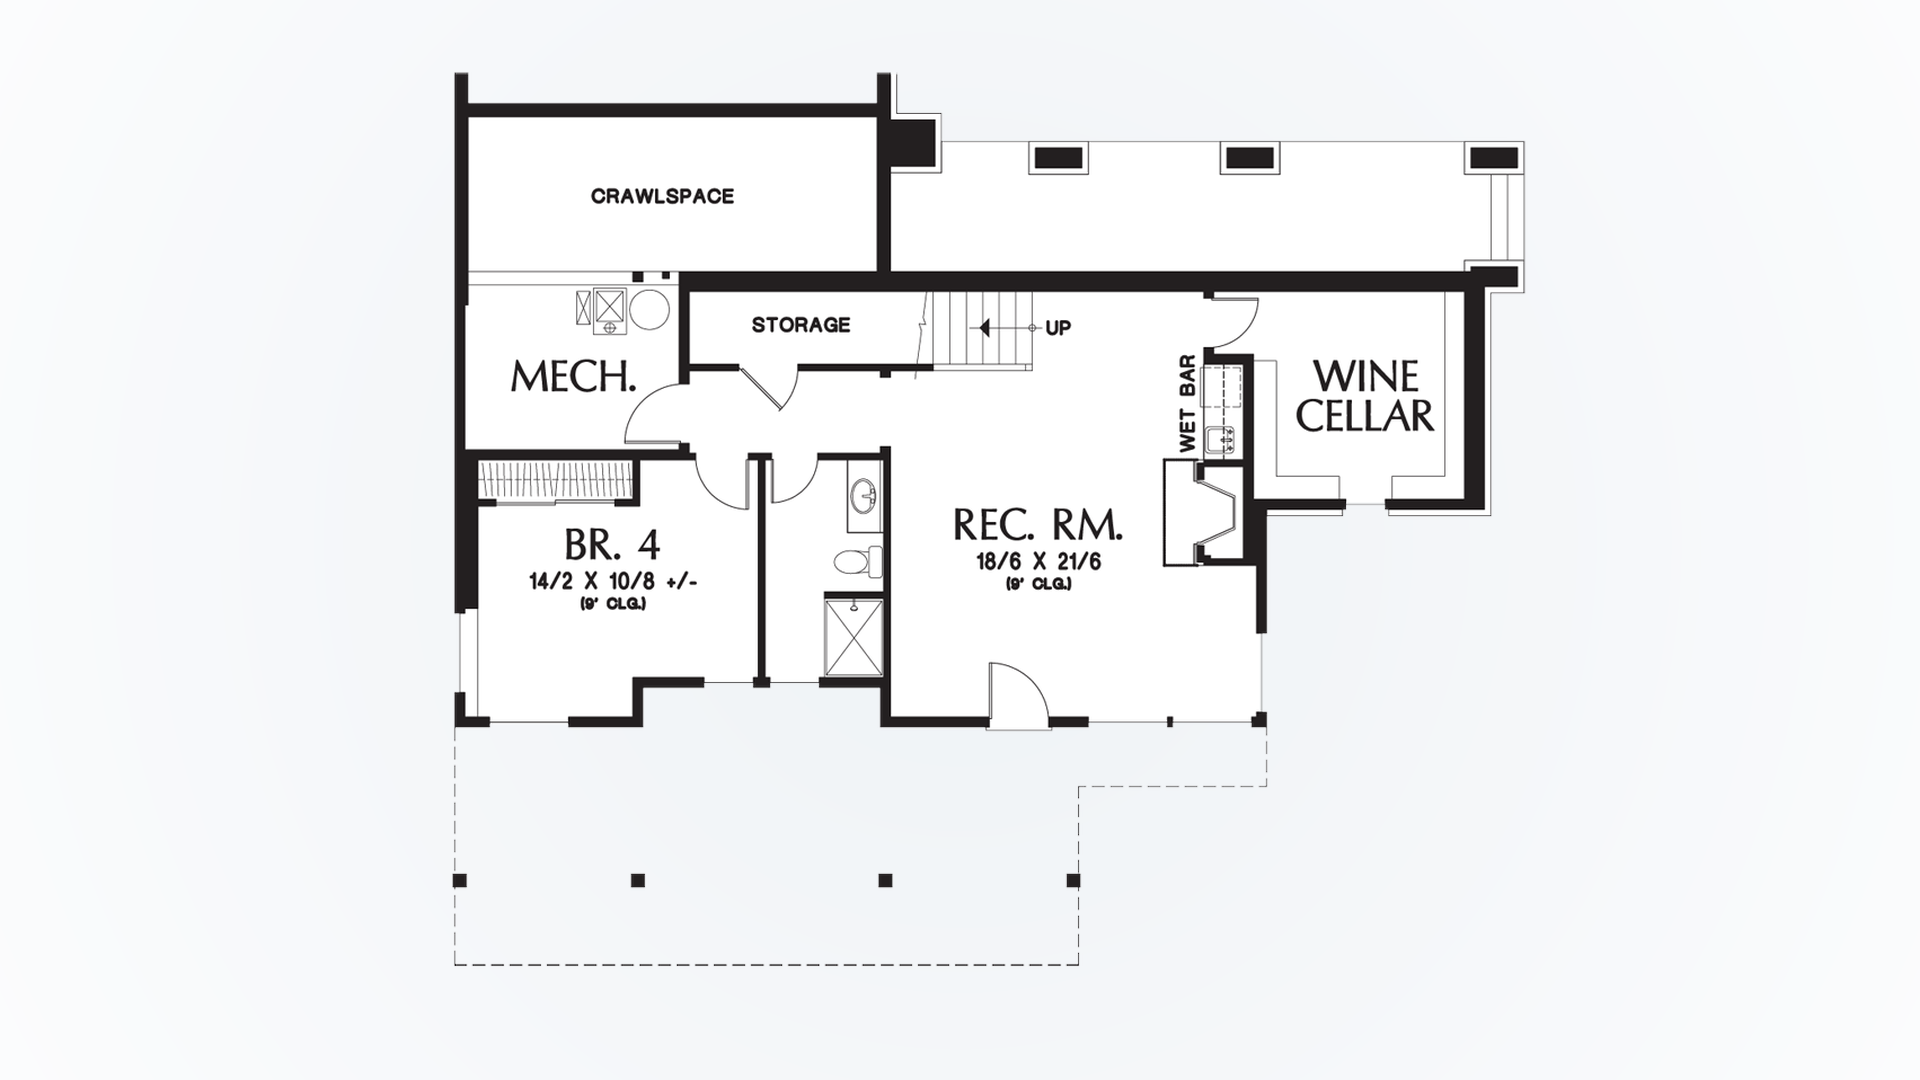 Craftsman House Plan 2374 The Clearfield: 3148 Sqft, 4 Bedrooms, 3.1 ...